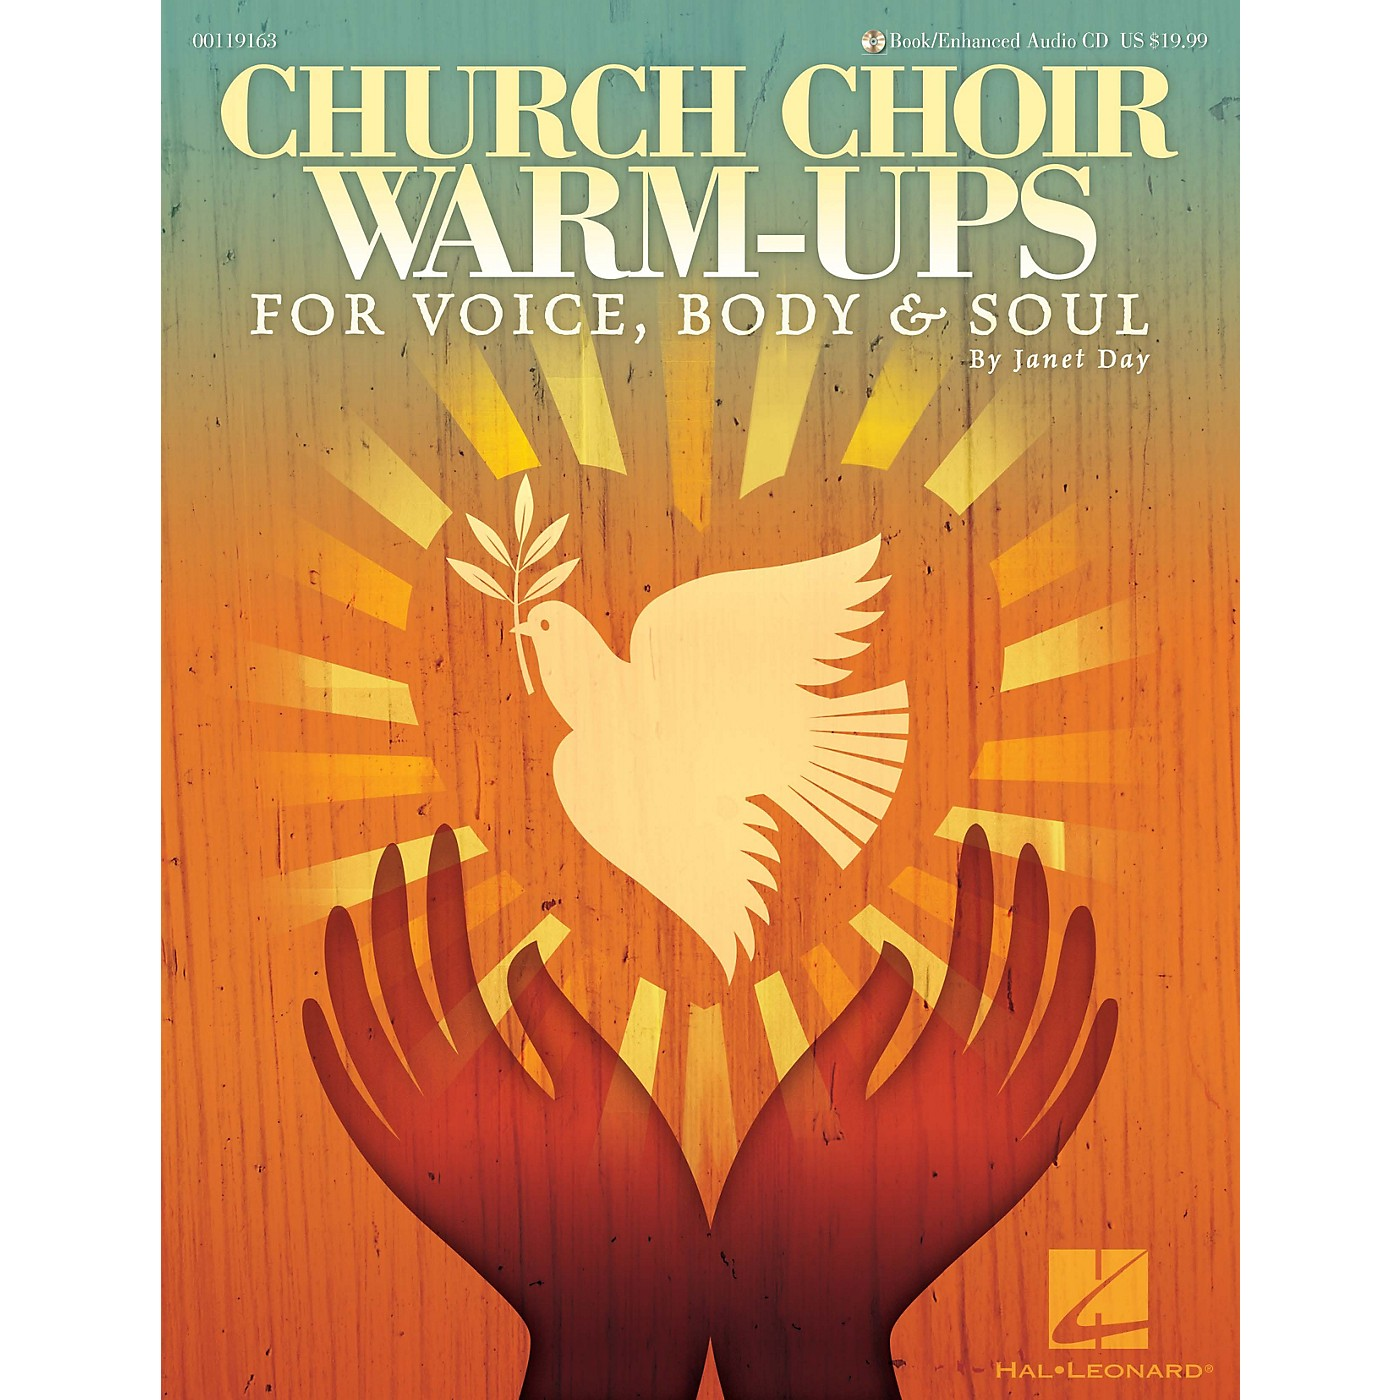 Hal Leonard Church Choir Warm-Ups (For Voice, Body & Soul) Book and CD pak composed by Janet Day thumbnail